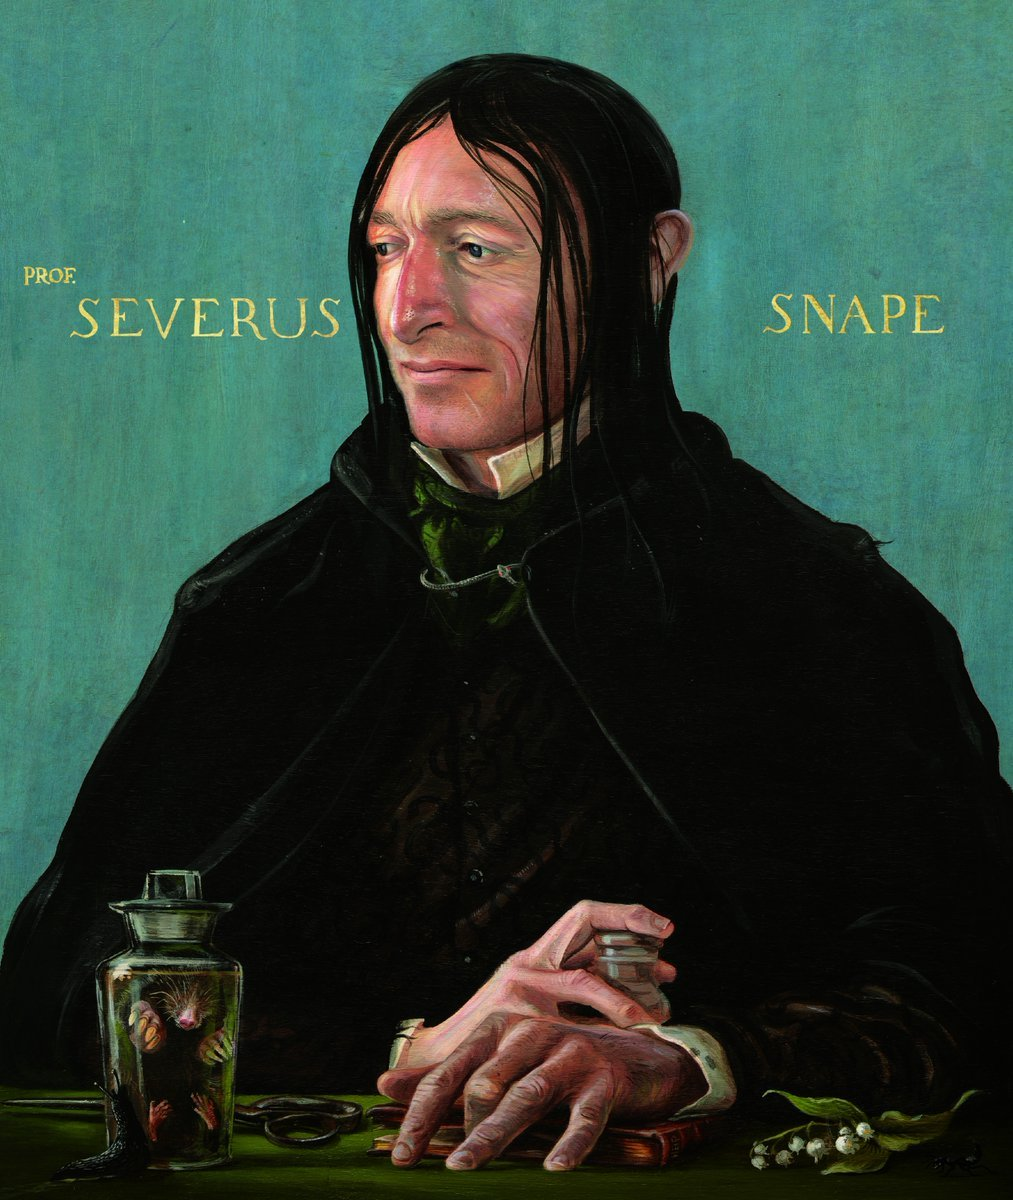 severus-snape-in-the-new-harry-potter-and-the-prisoner-of-azkaban-illustrated-edition